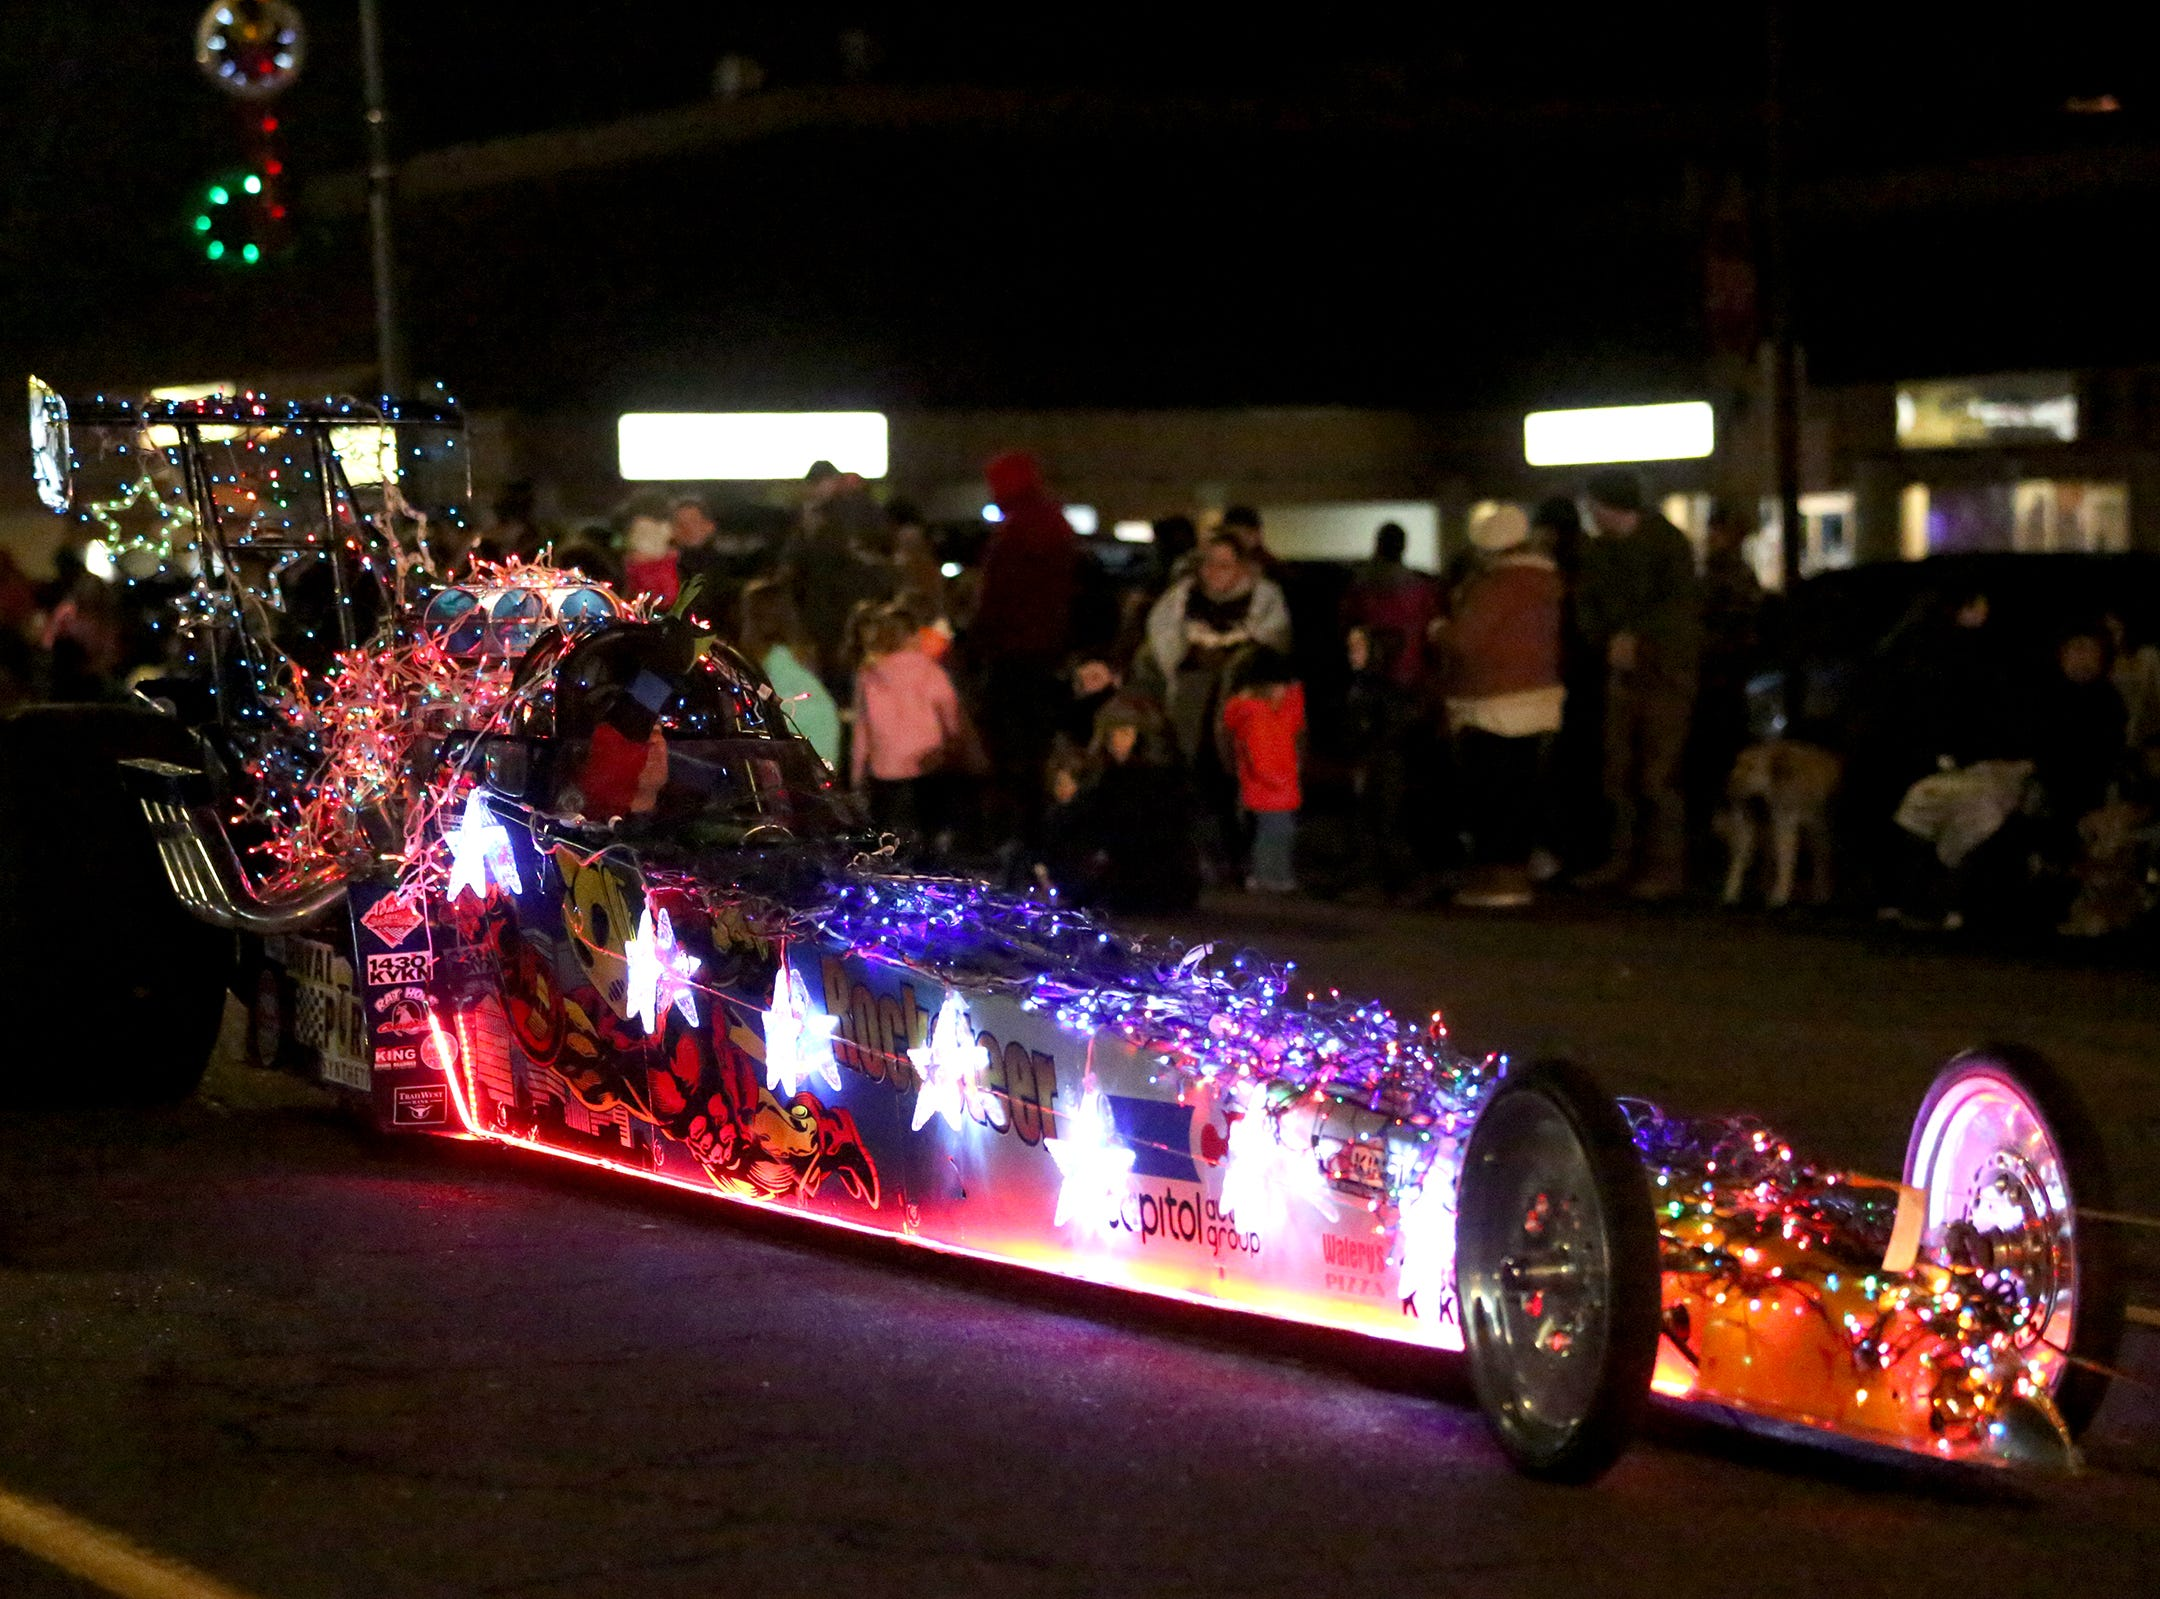 A race car covered in lights is showcased at the Keizer Holiday Lights Parade in Keizer on Saturday, Dec. 8, 2018.